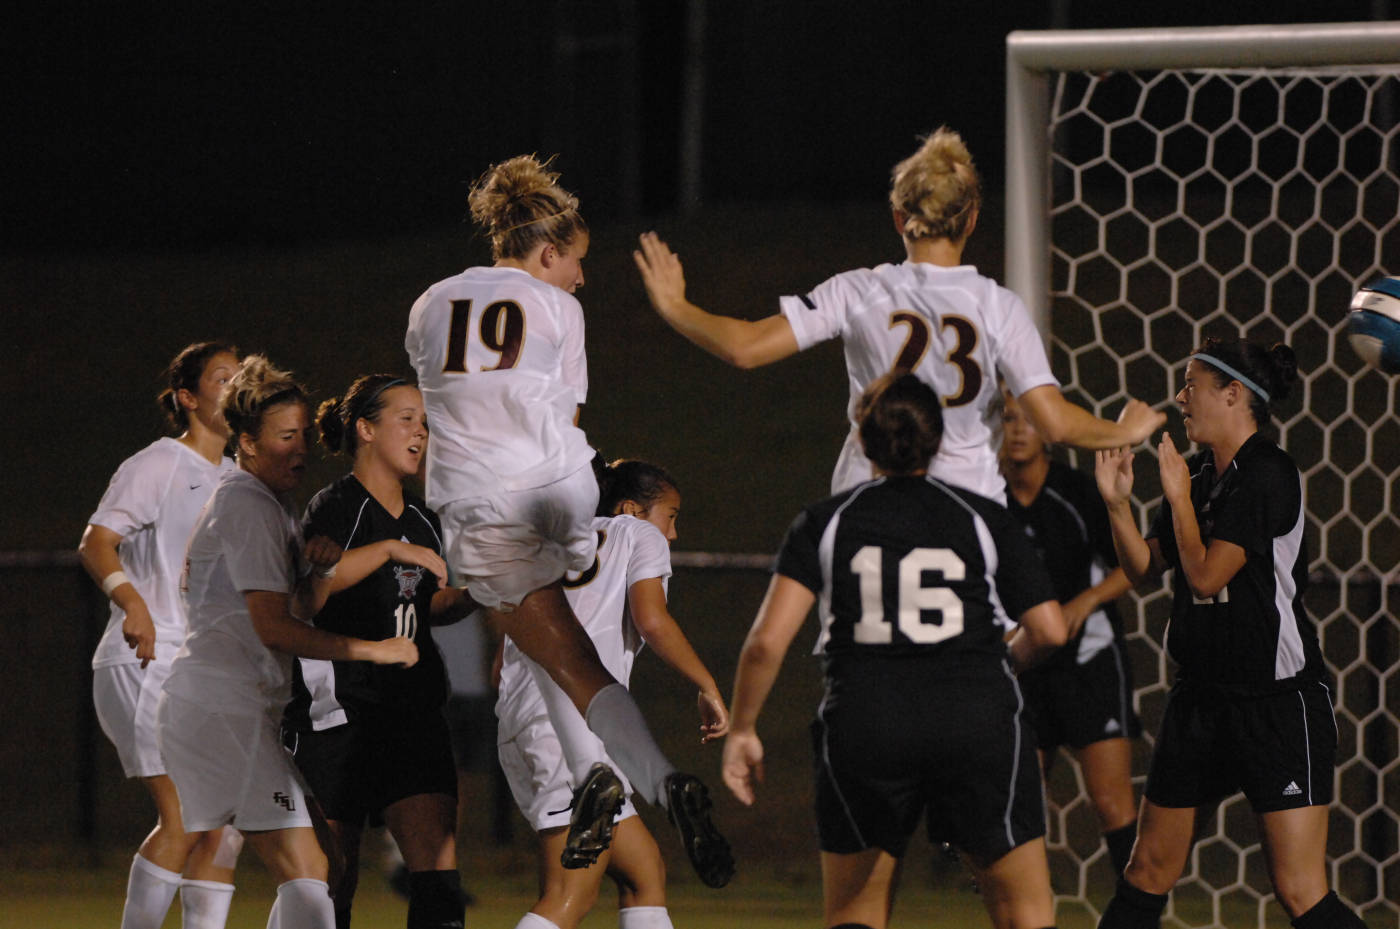 Becky Edwards scores her second goal of the evening on a header shot off a corner kick by sophomore Annie Stalzer.